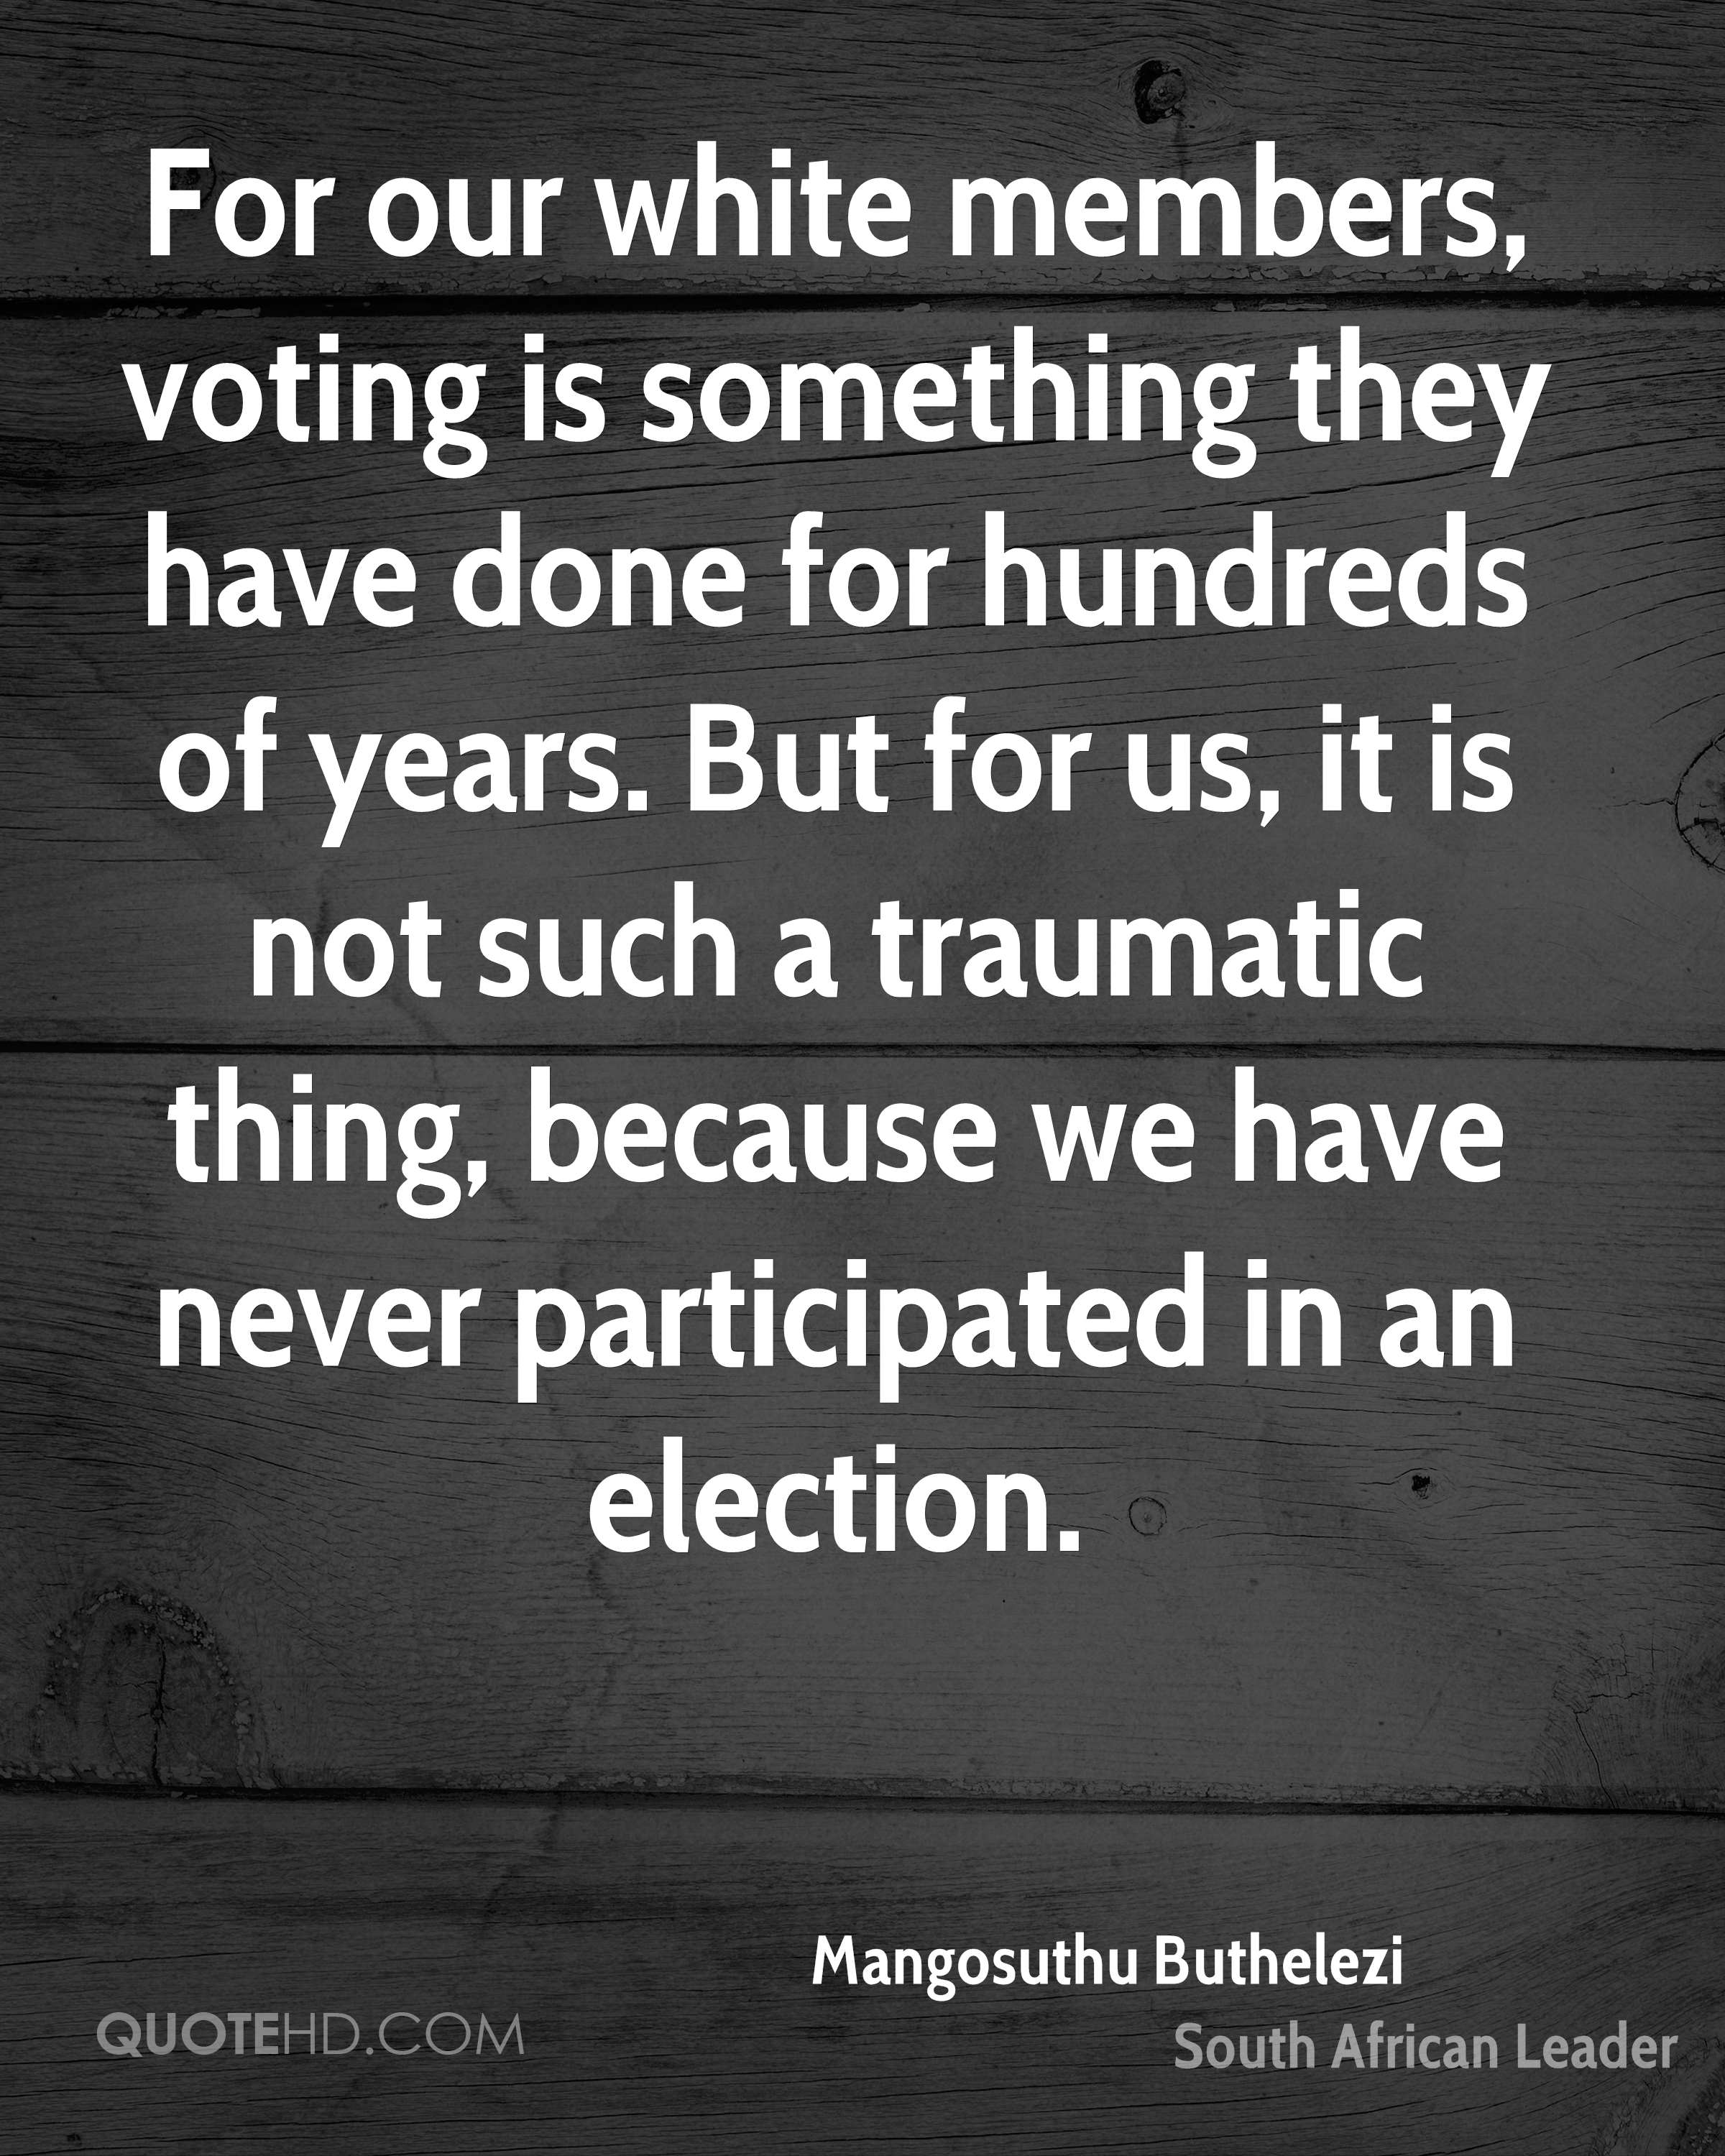 For our white members, voting is something they have done for hundreds of years. But for us, it is not such a traumatic thing, because we have never participated in an election.